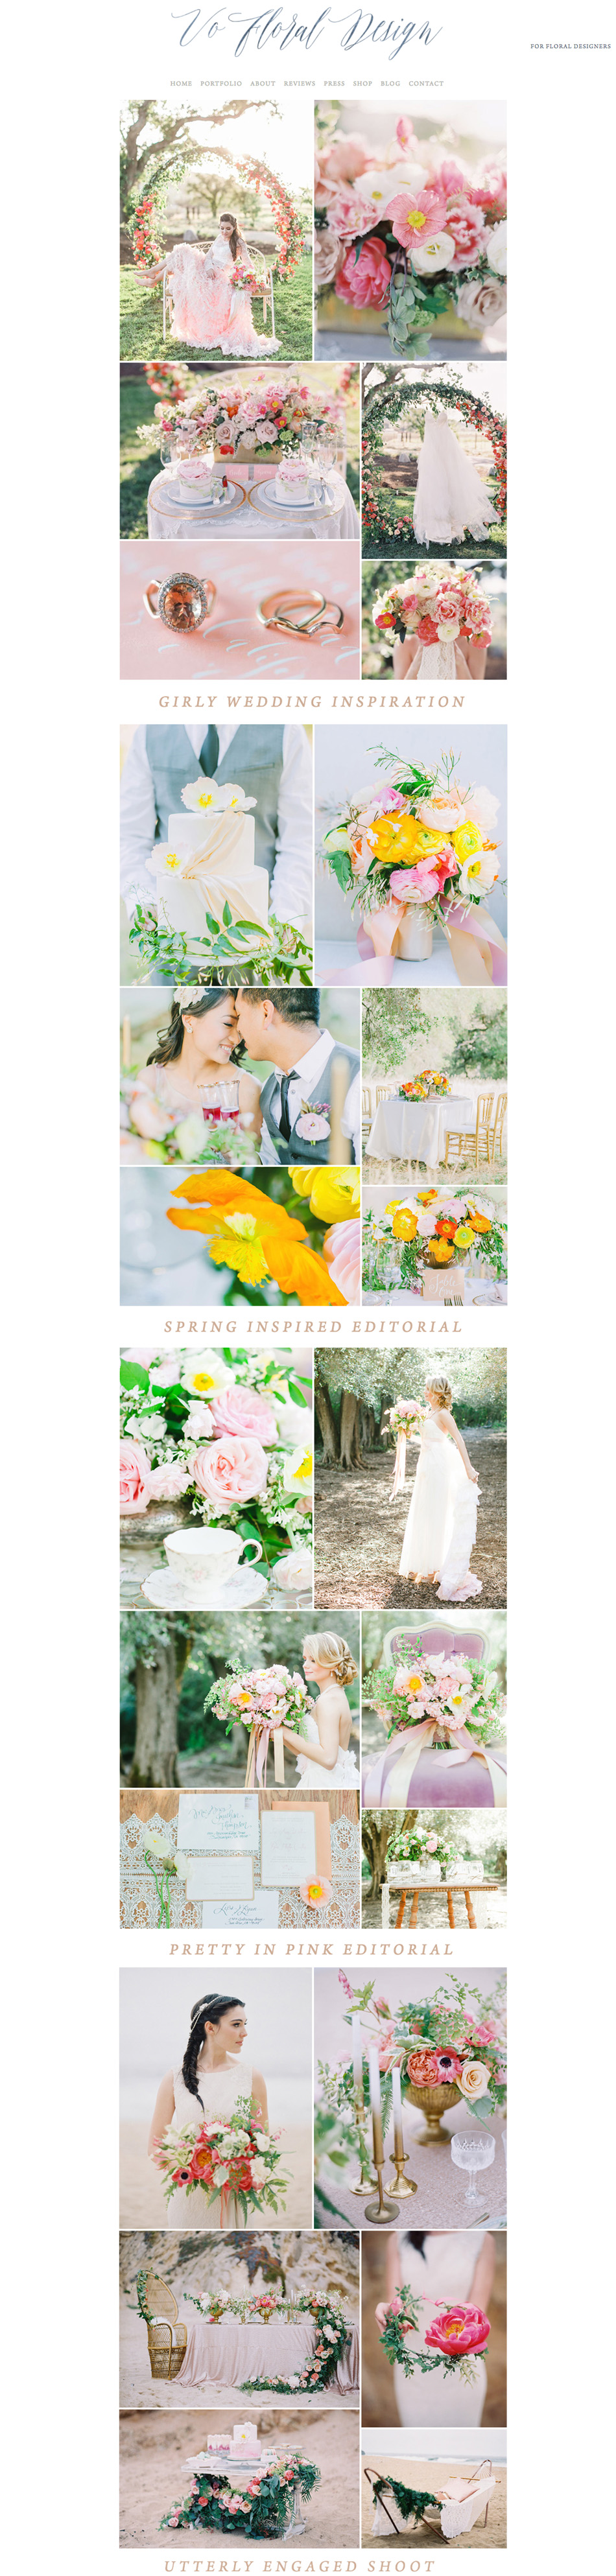 theeditorstouch.com | Squarespace Website Designer For Wedding Professionals | The Editor's Touch | Vo Floral Design